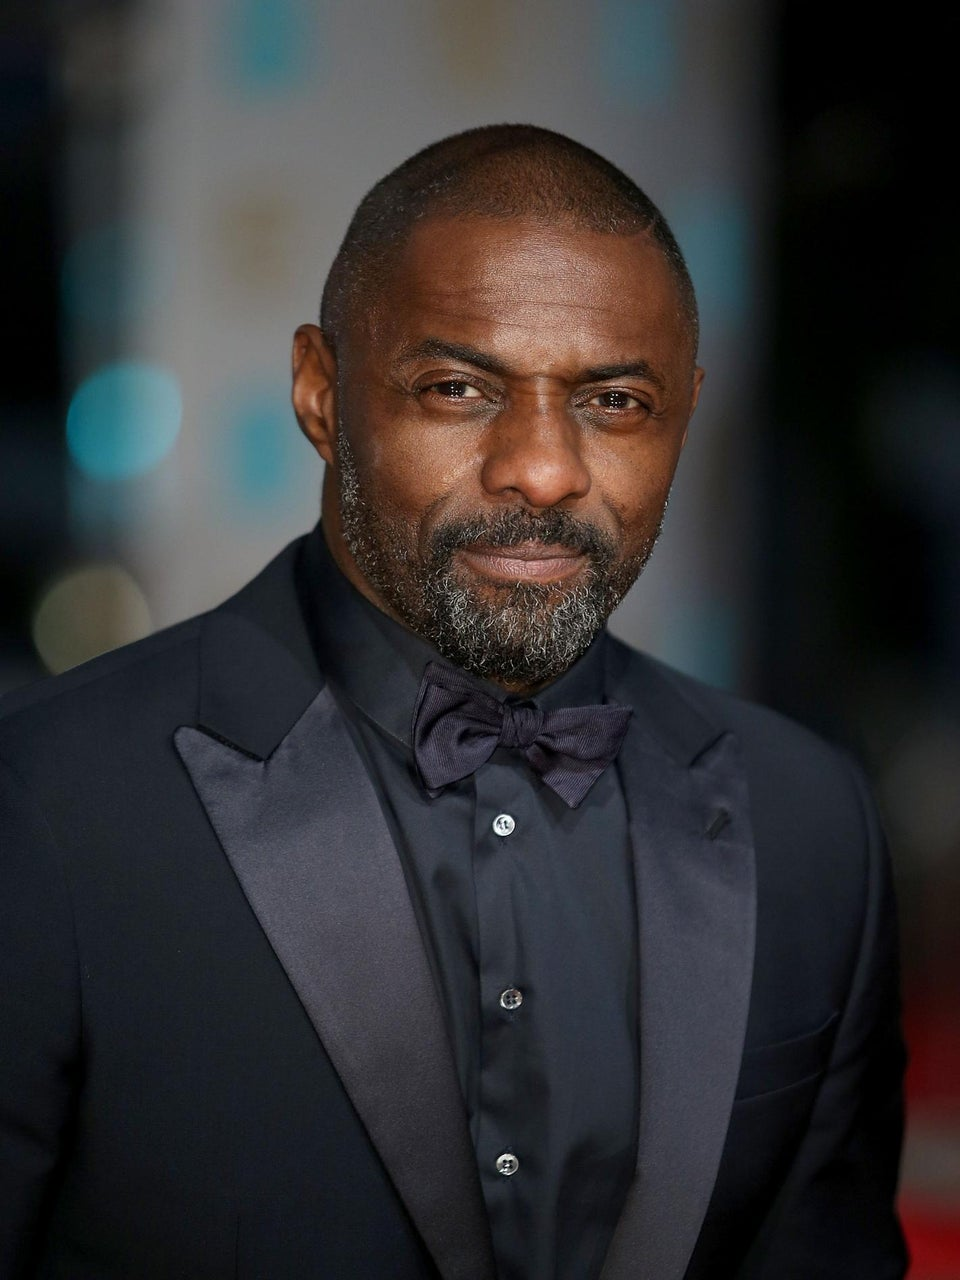 Idris Elba Adding Fashion to His Resume With Superdry Doc